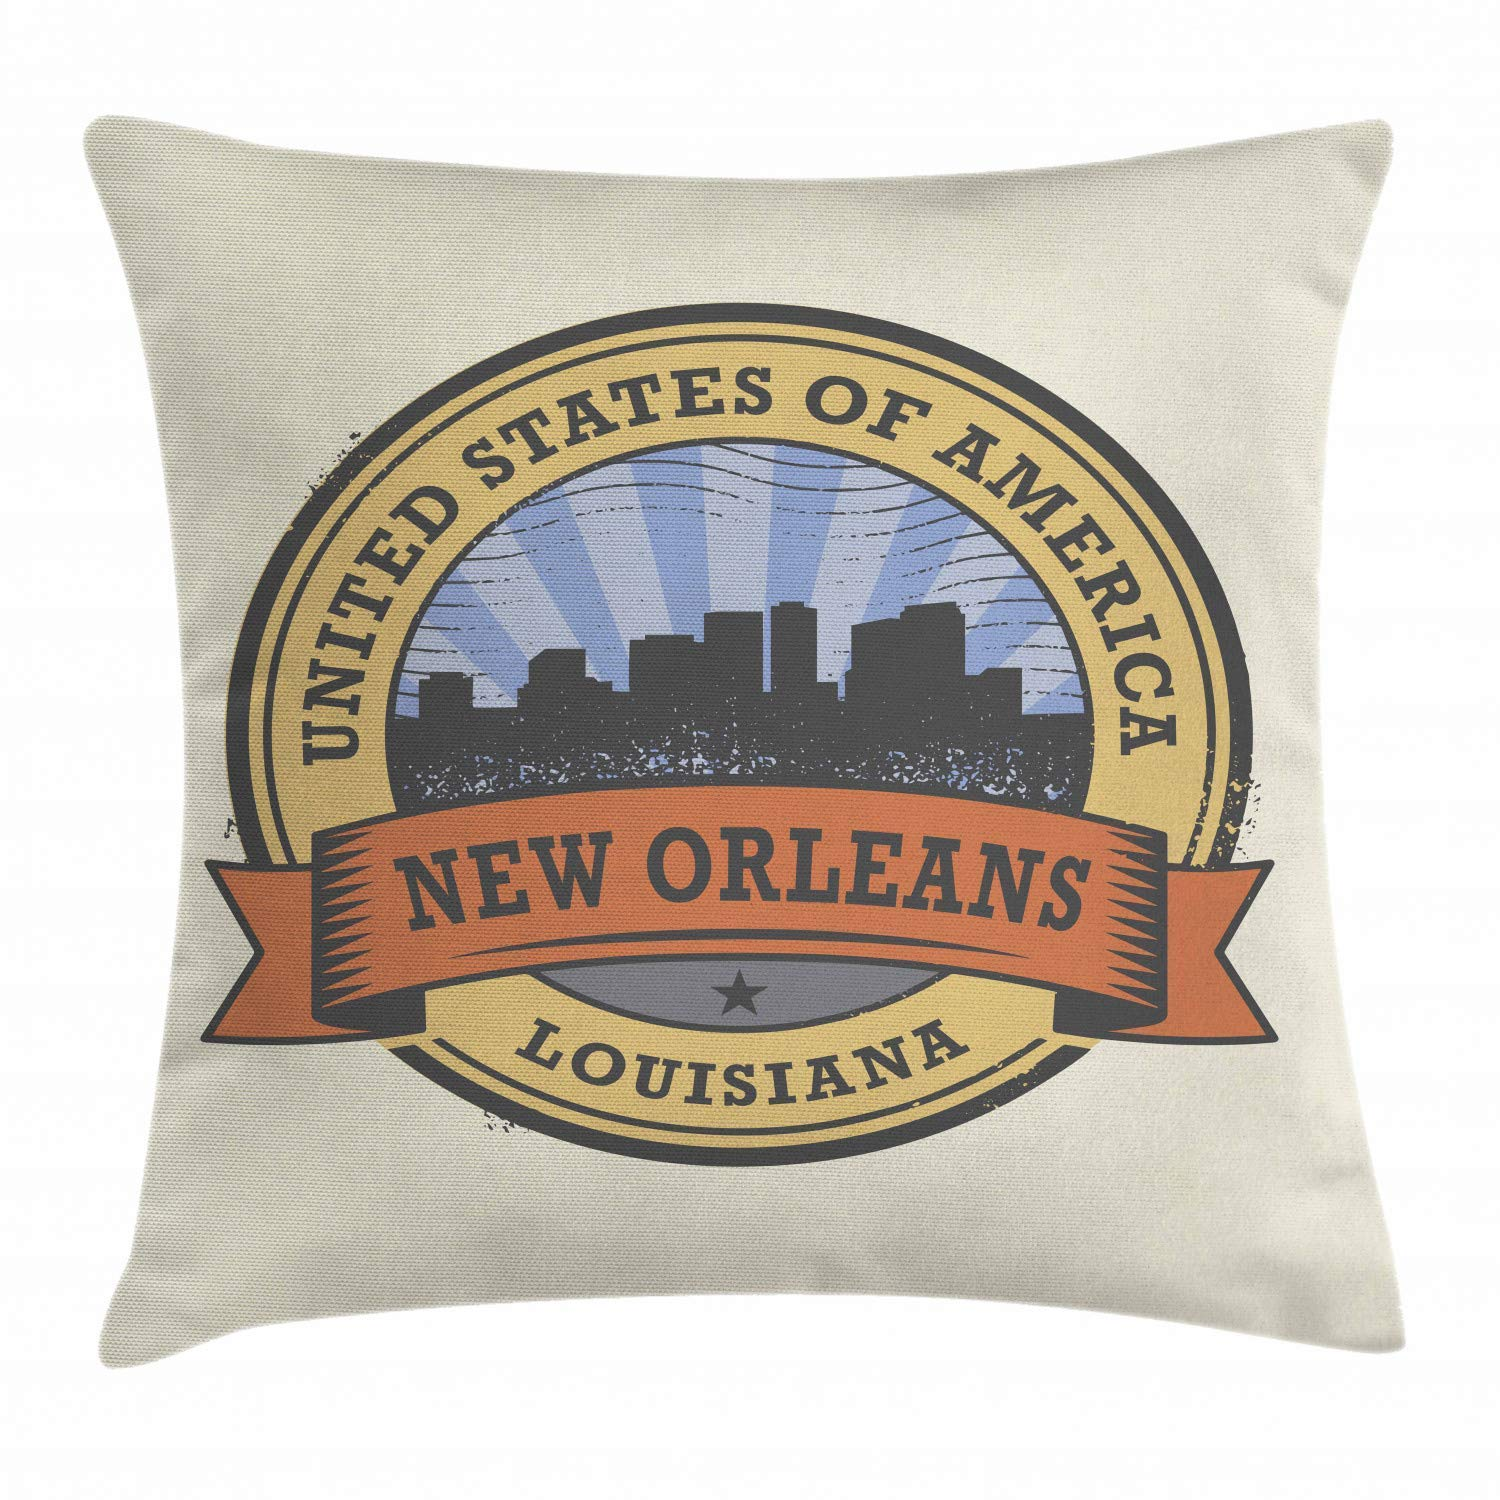 Amazon.com: Uwwrticm New Orleans Throw Pillow Cushion Cover ...